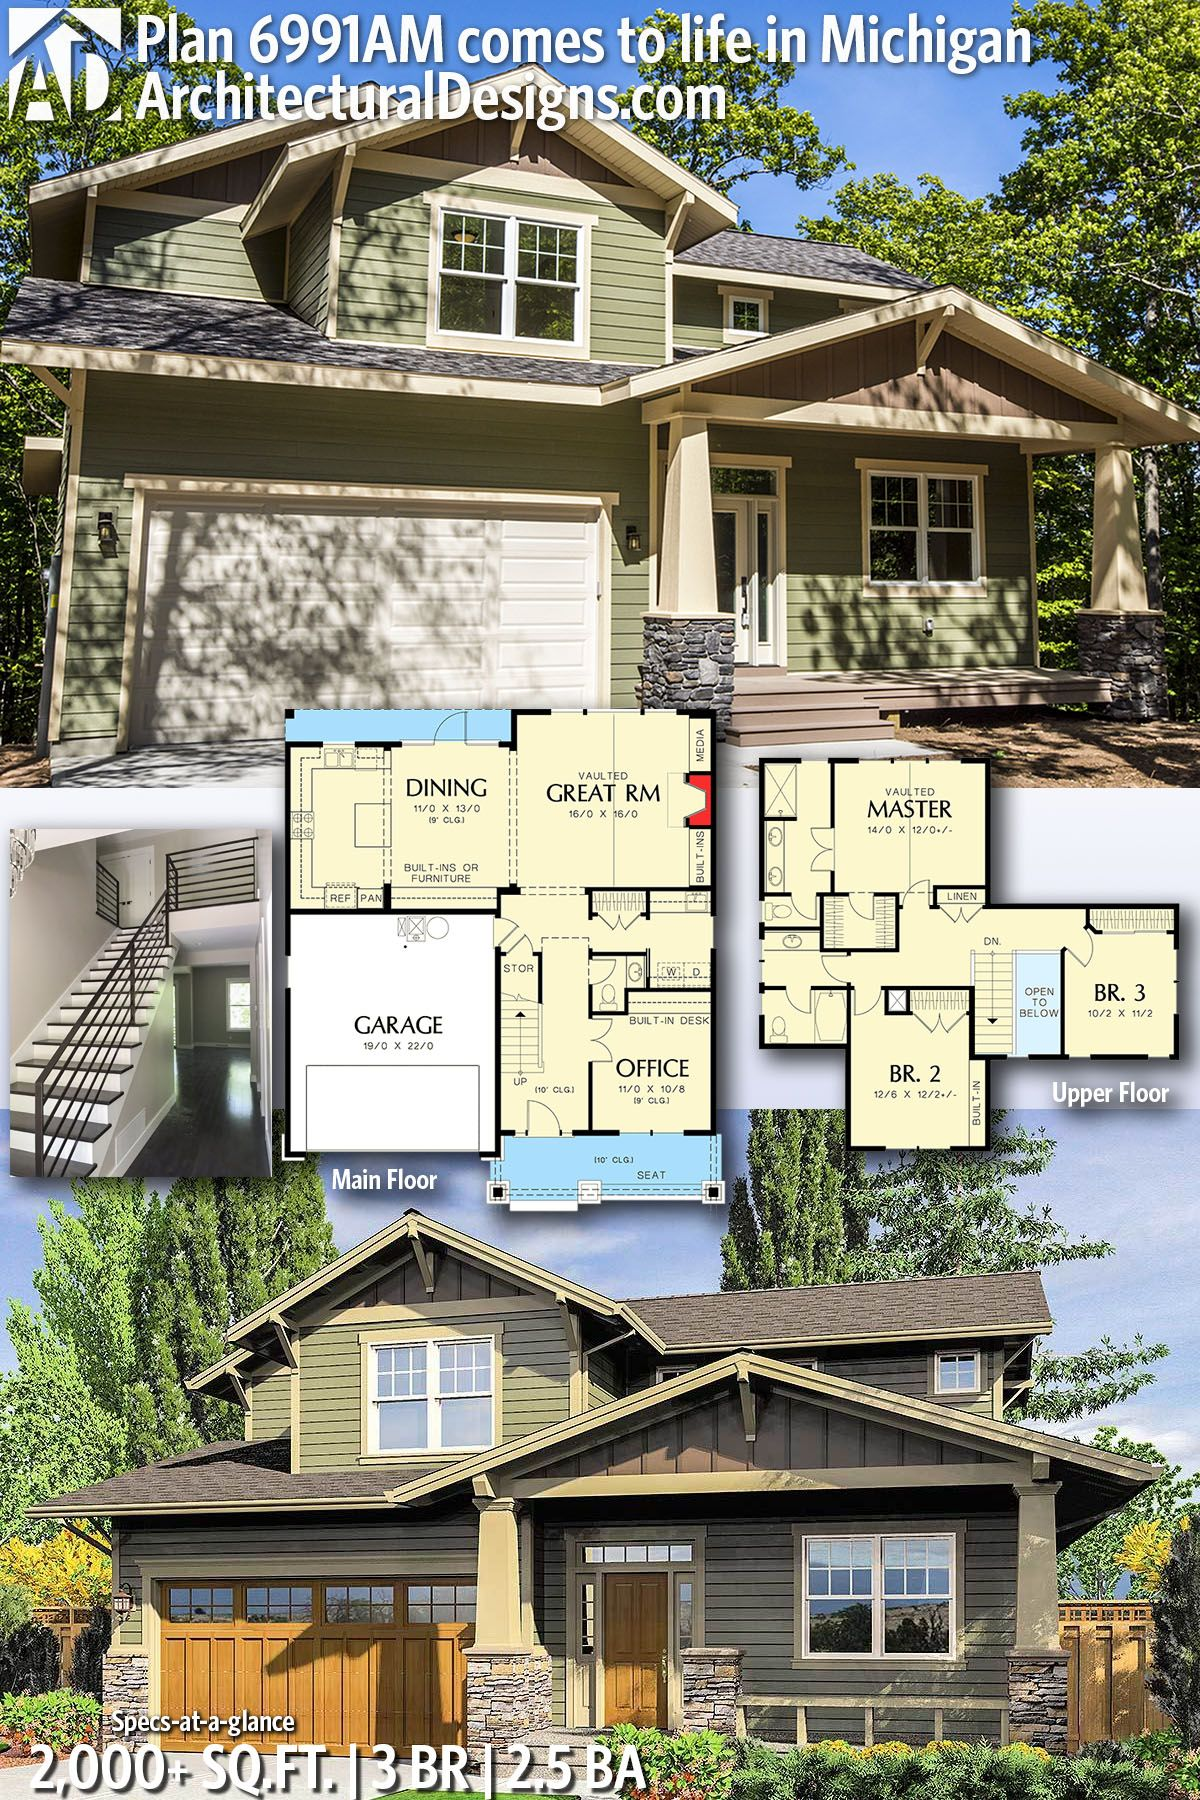 Plan am great style on a budget in floor plans future